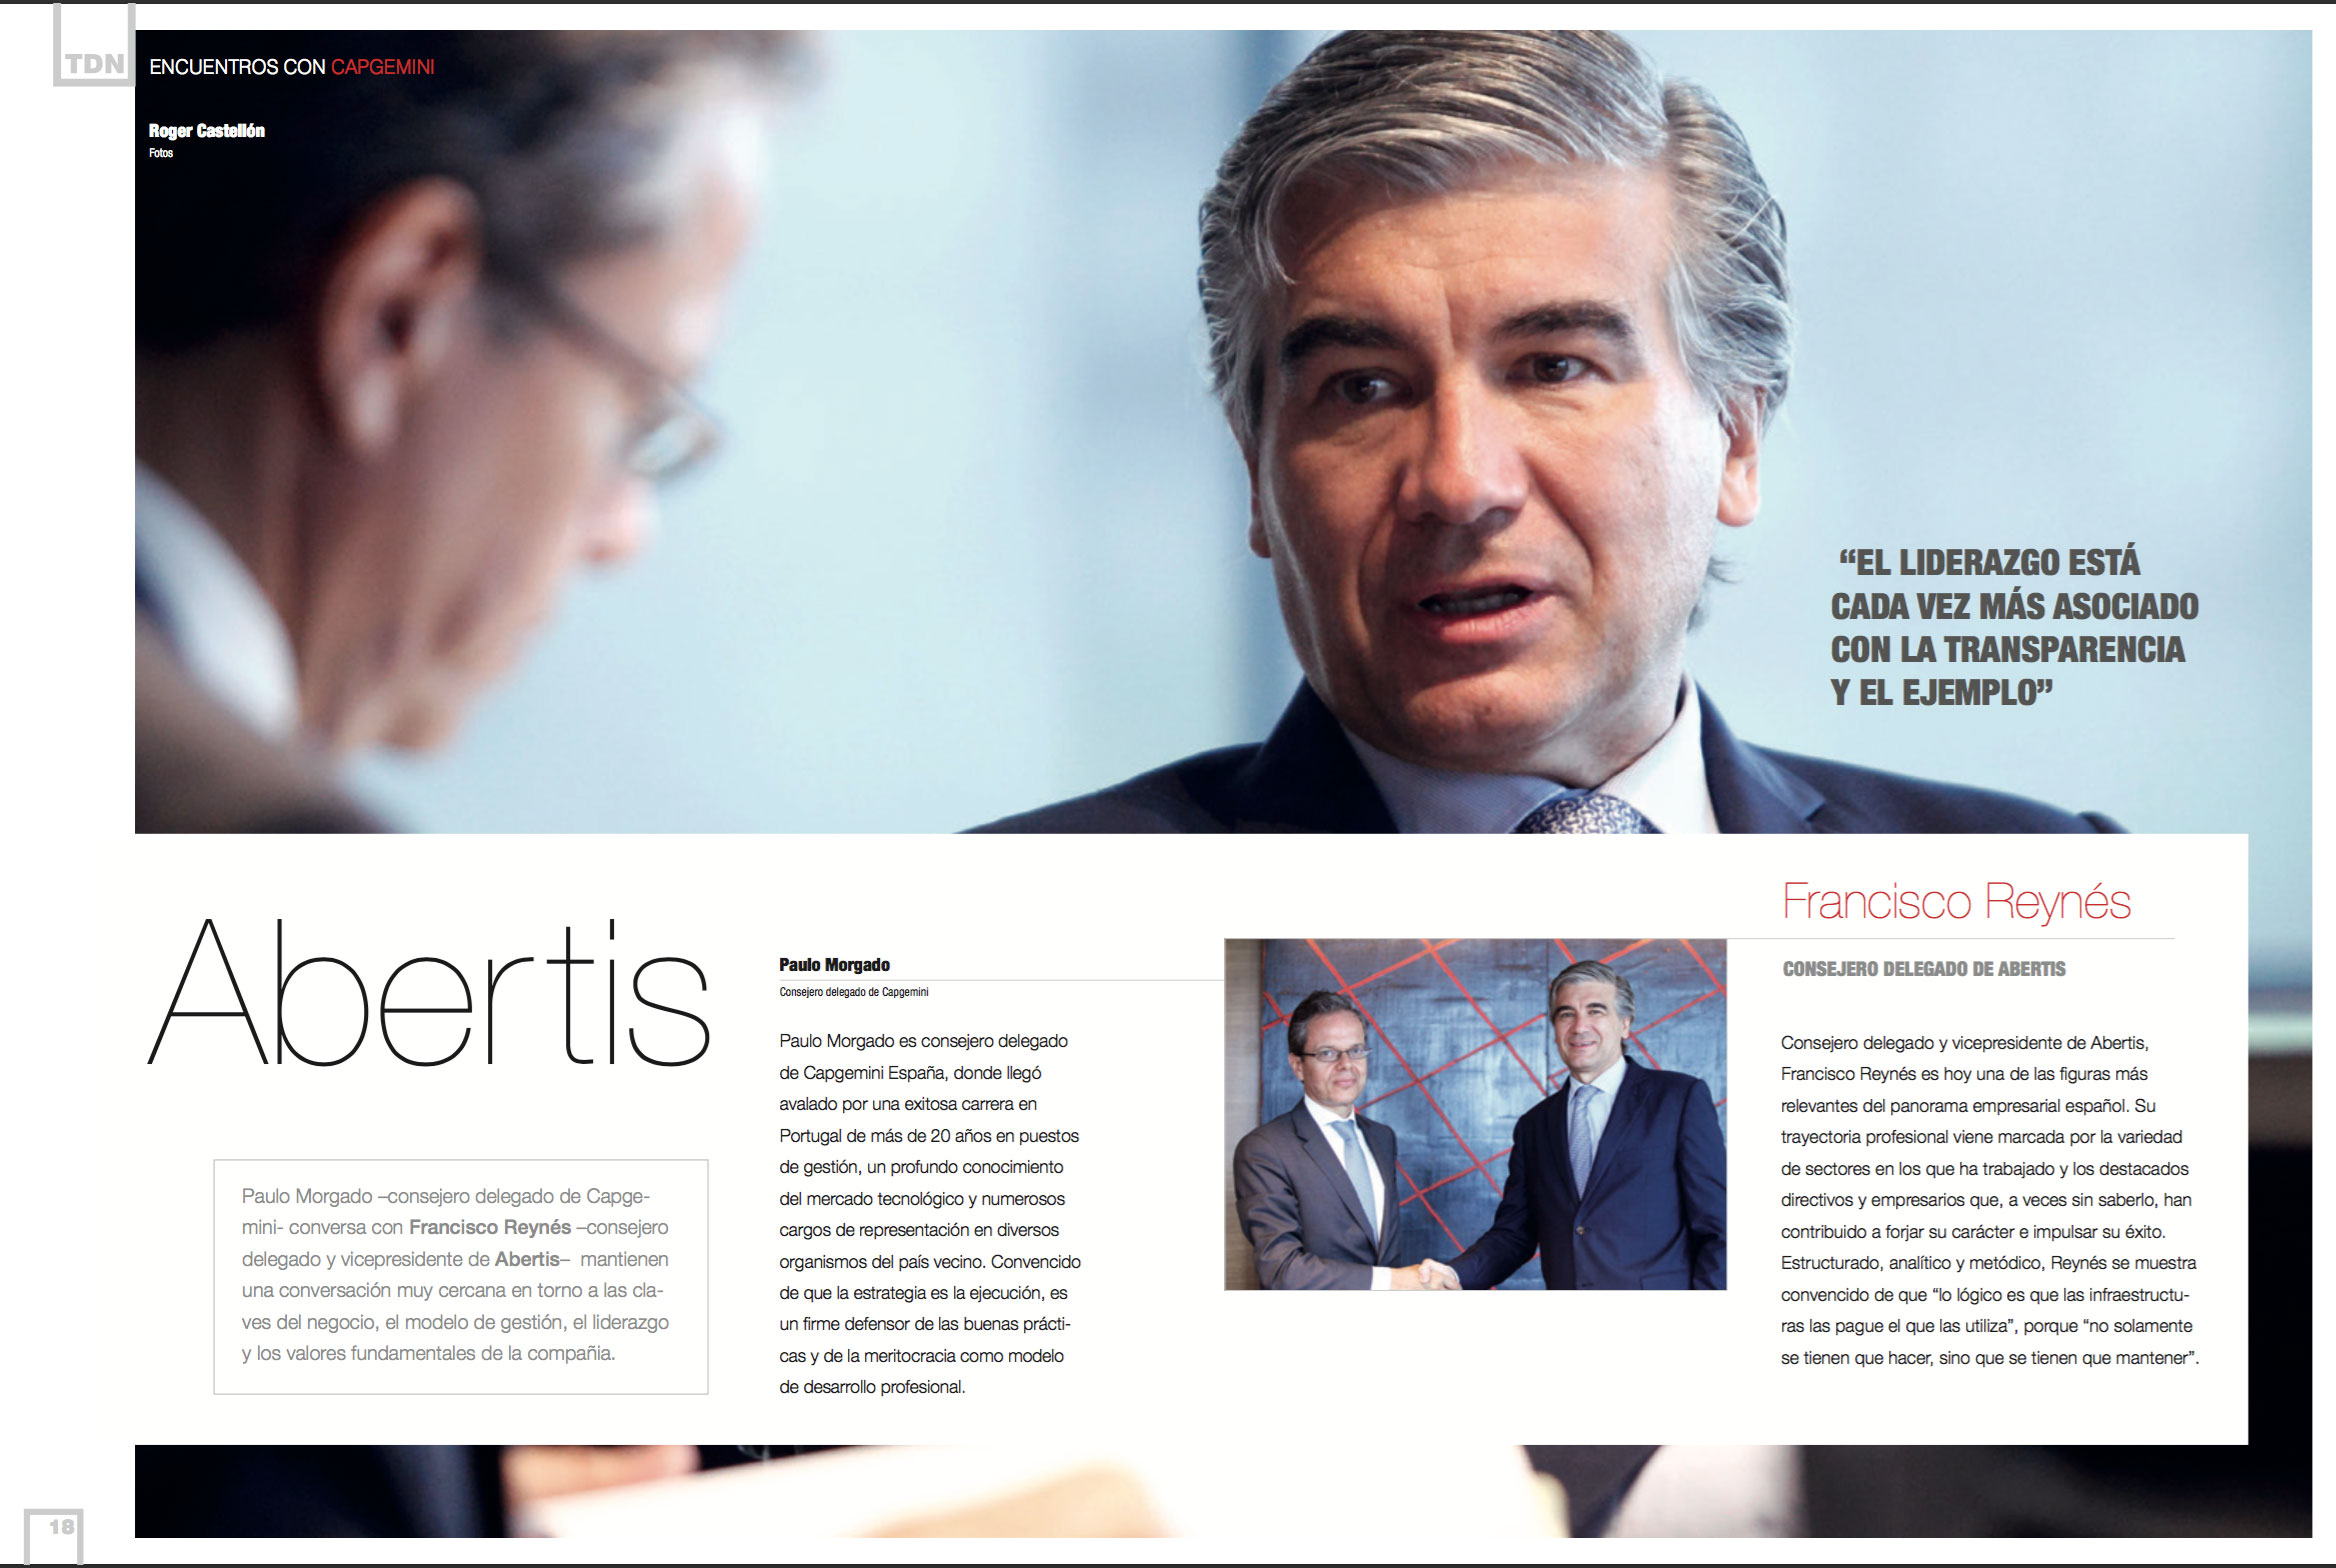 Francisco Reynés, Chief Executive Officer and Vice President at Abertis